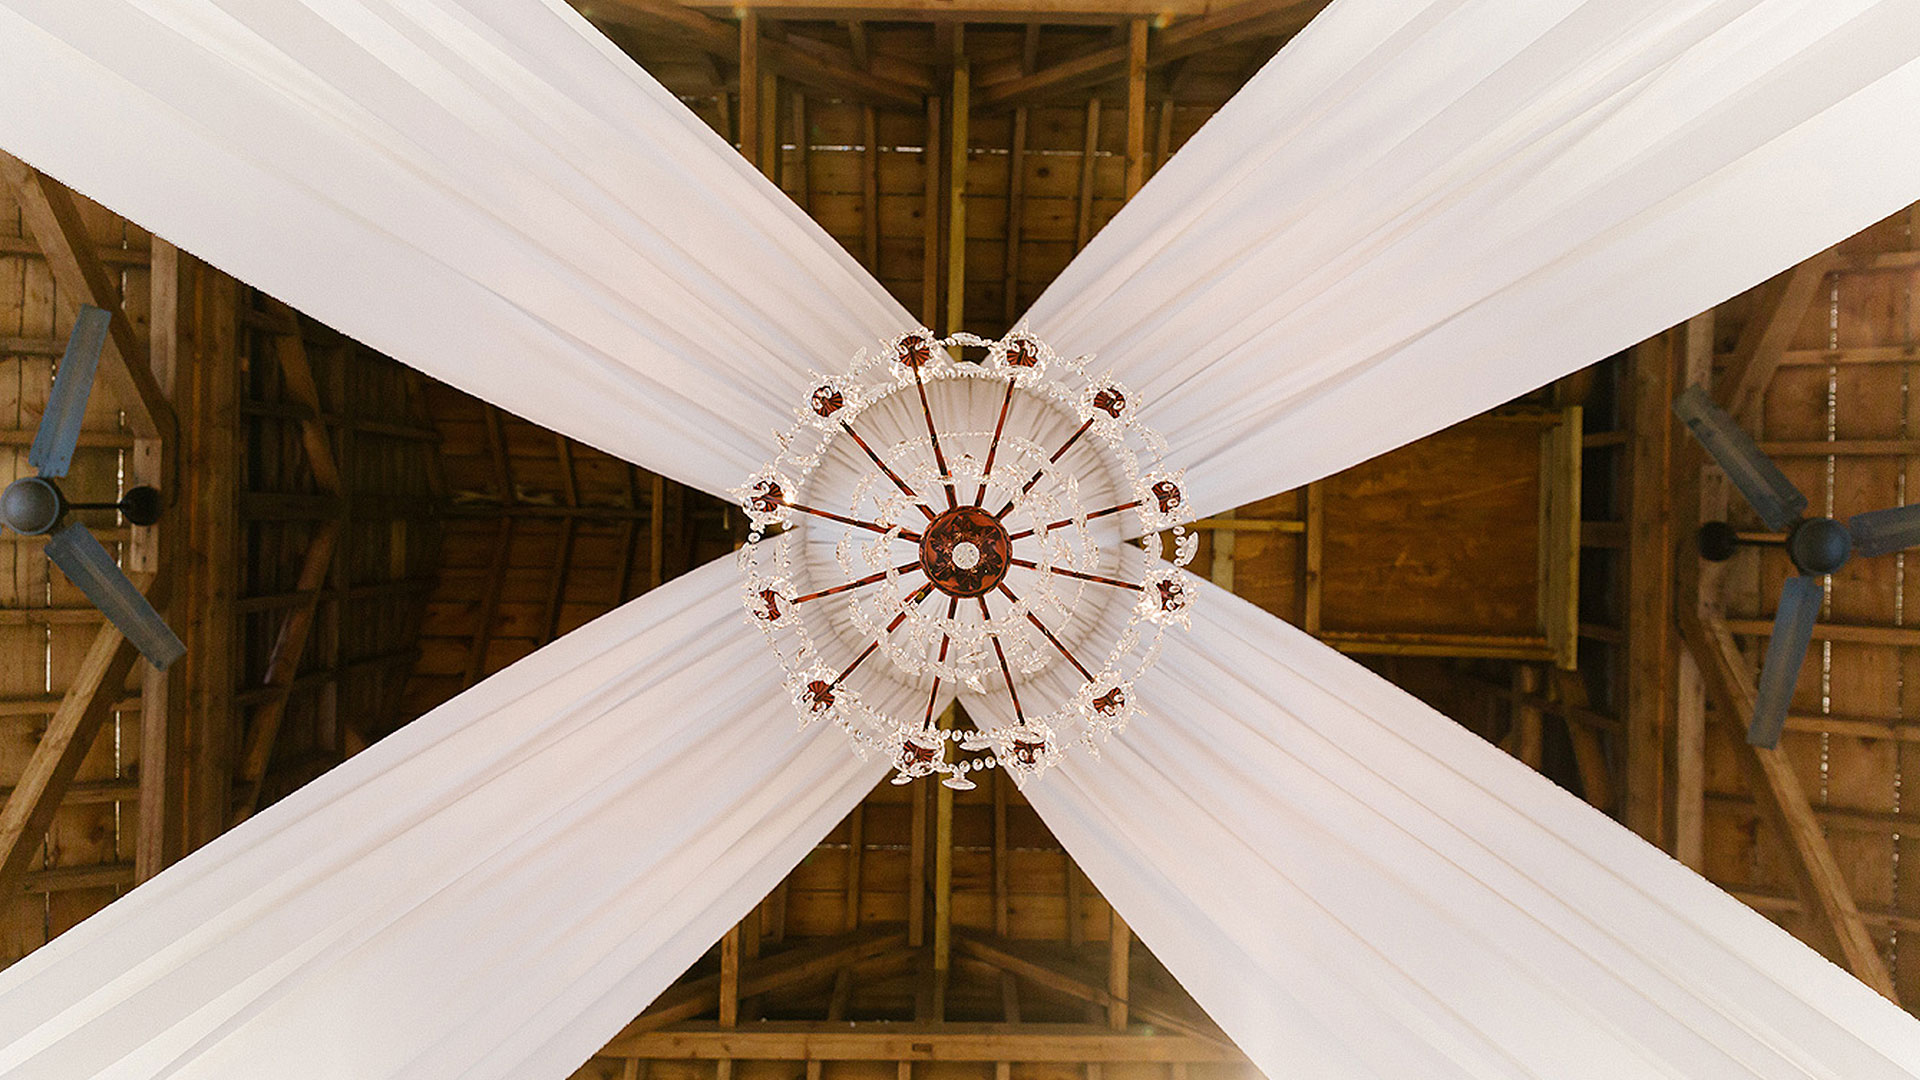 A stunning crystal chandelier hangs from the ceiling in the Mill Barn - wedding decoration ideas